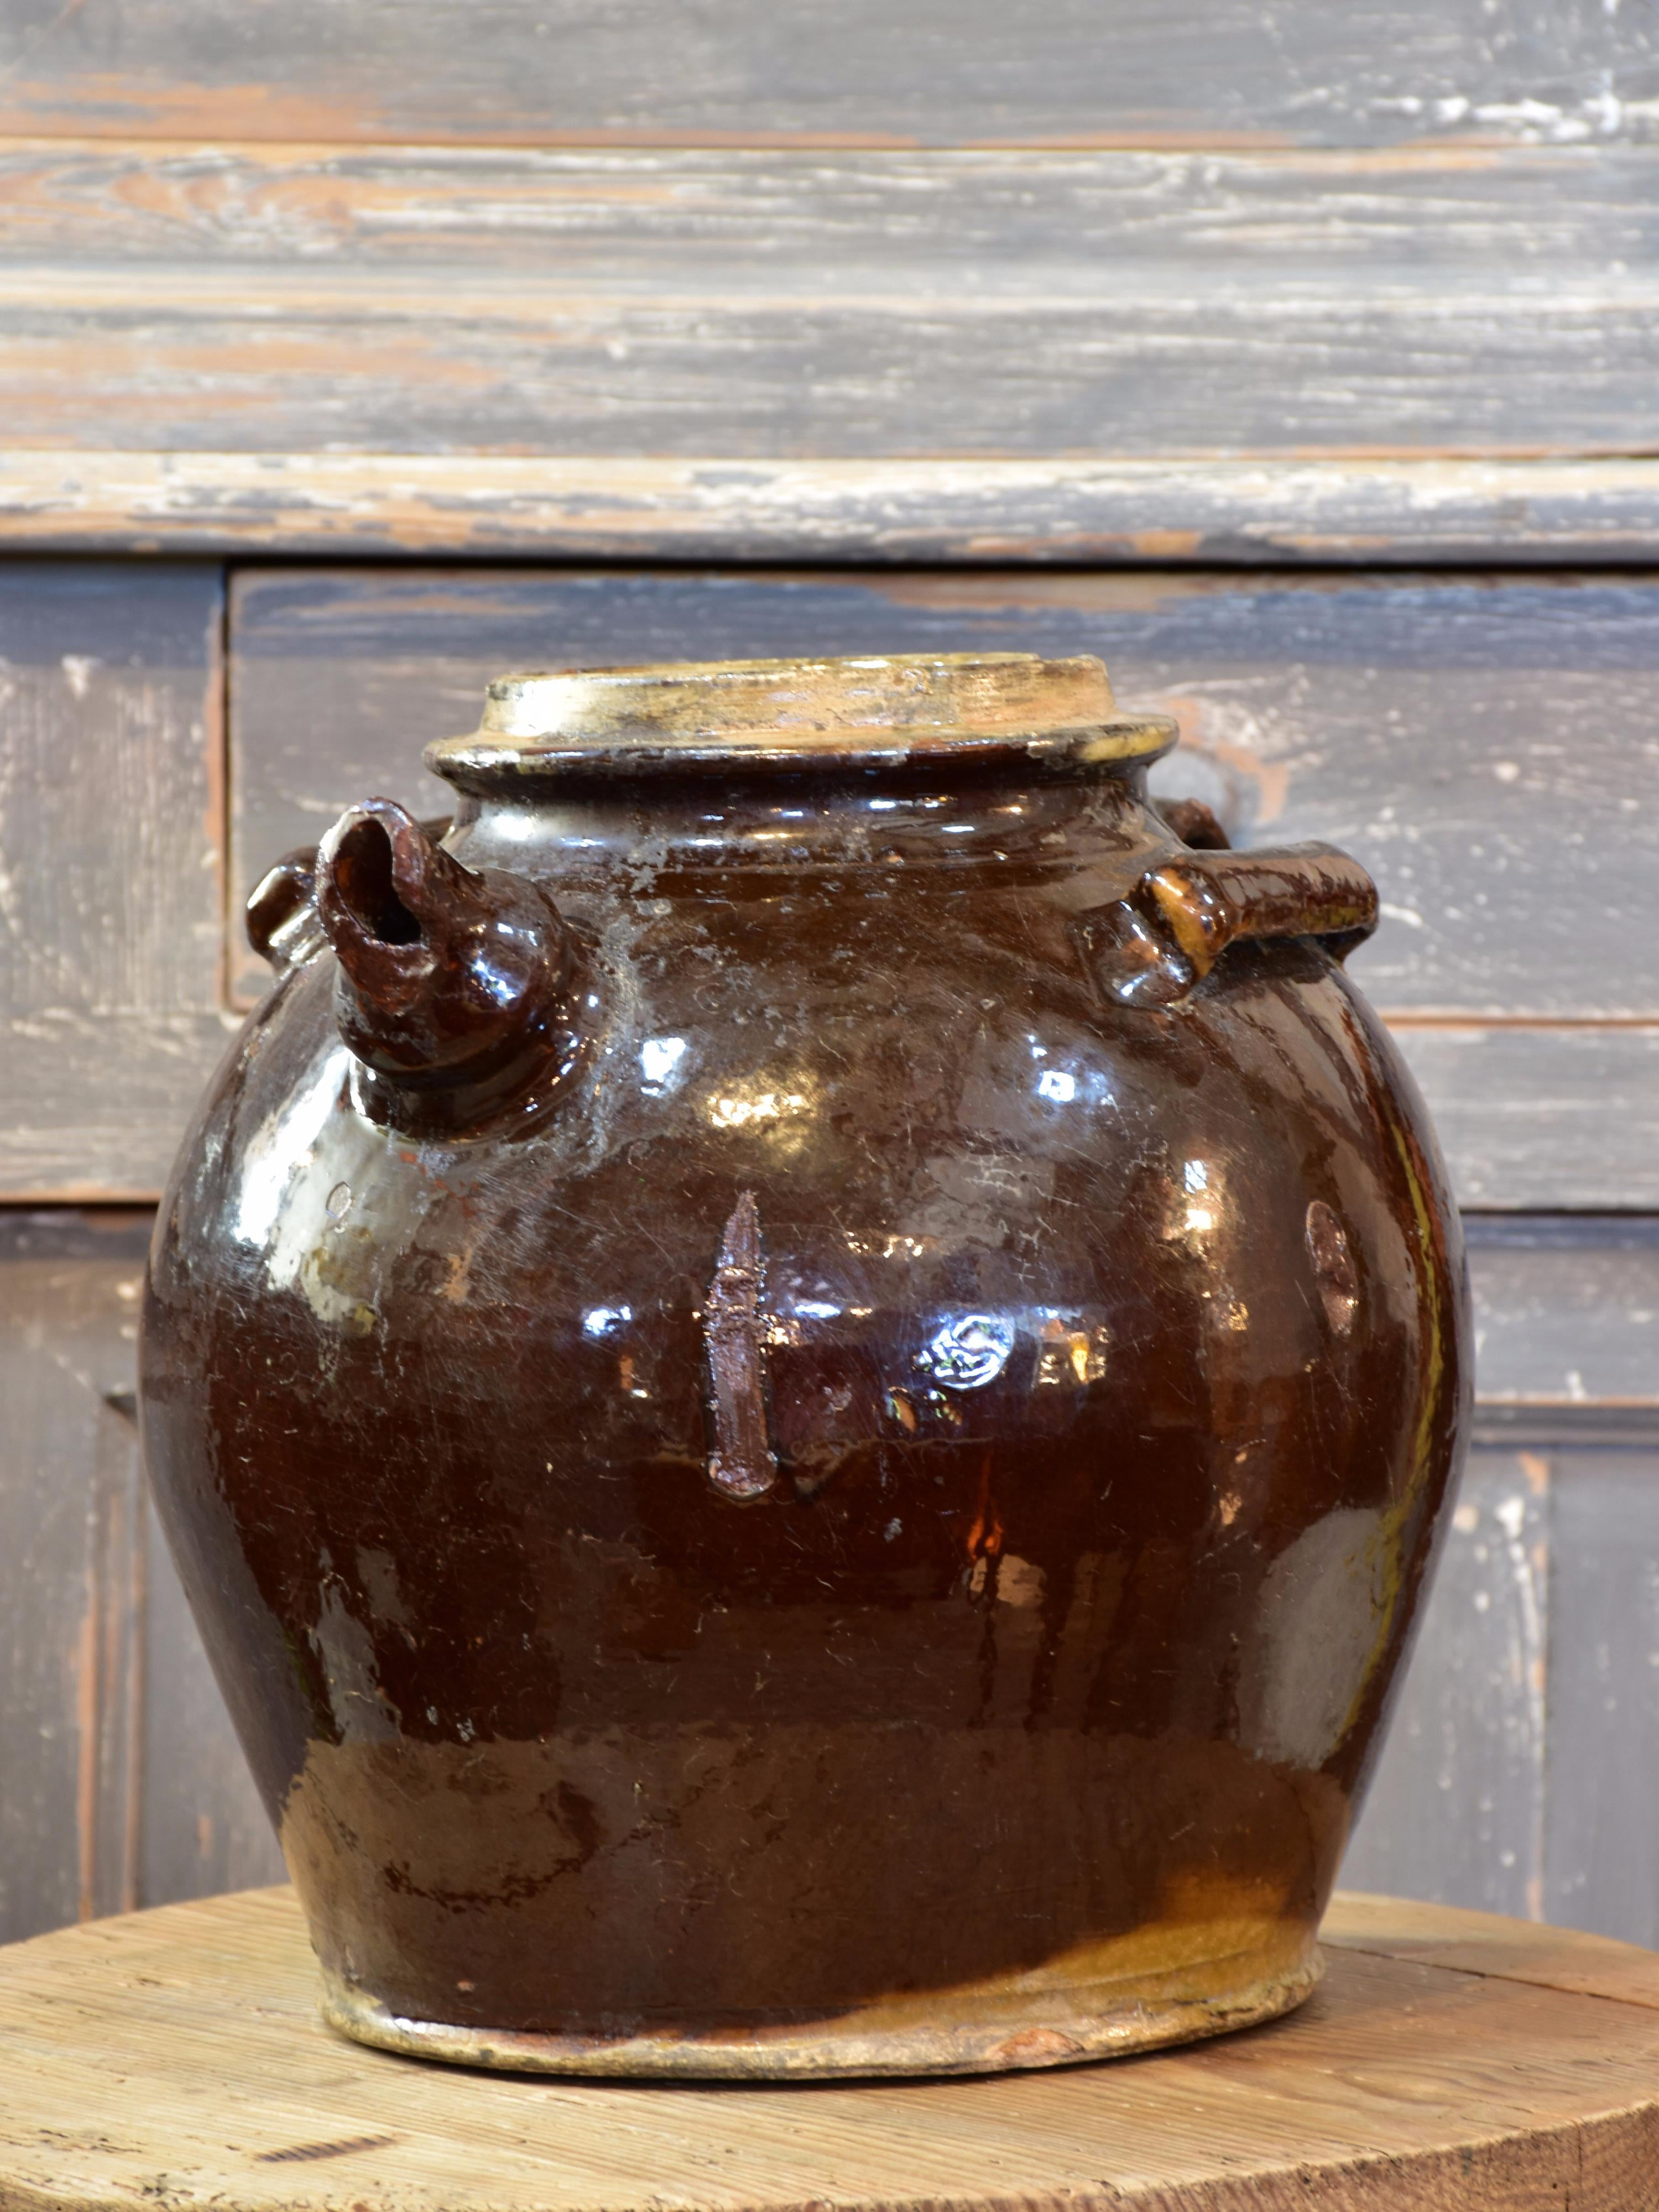 Early 19th century glazed terracotta water pitcher